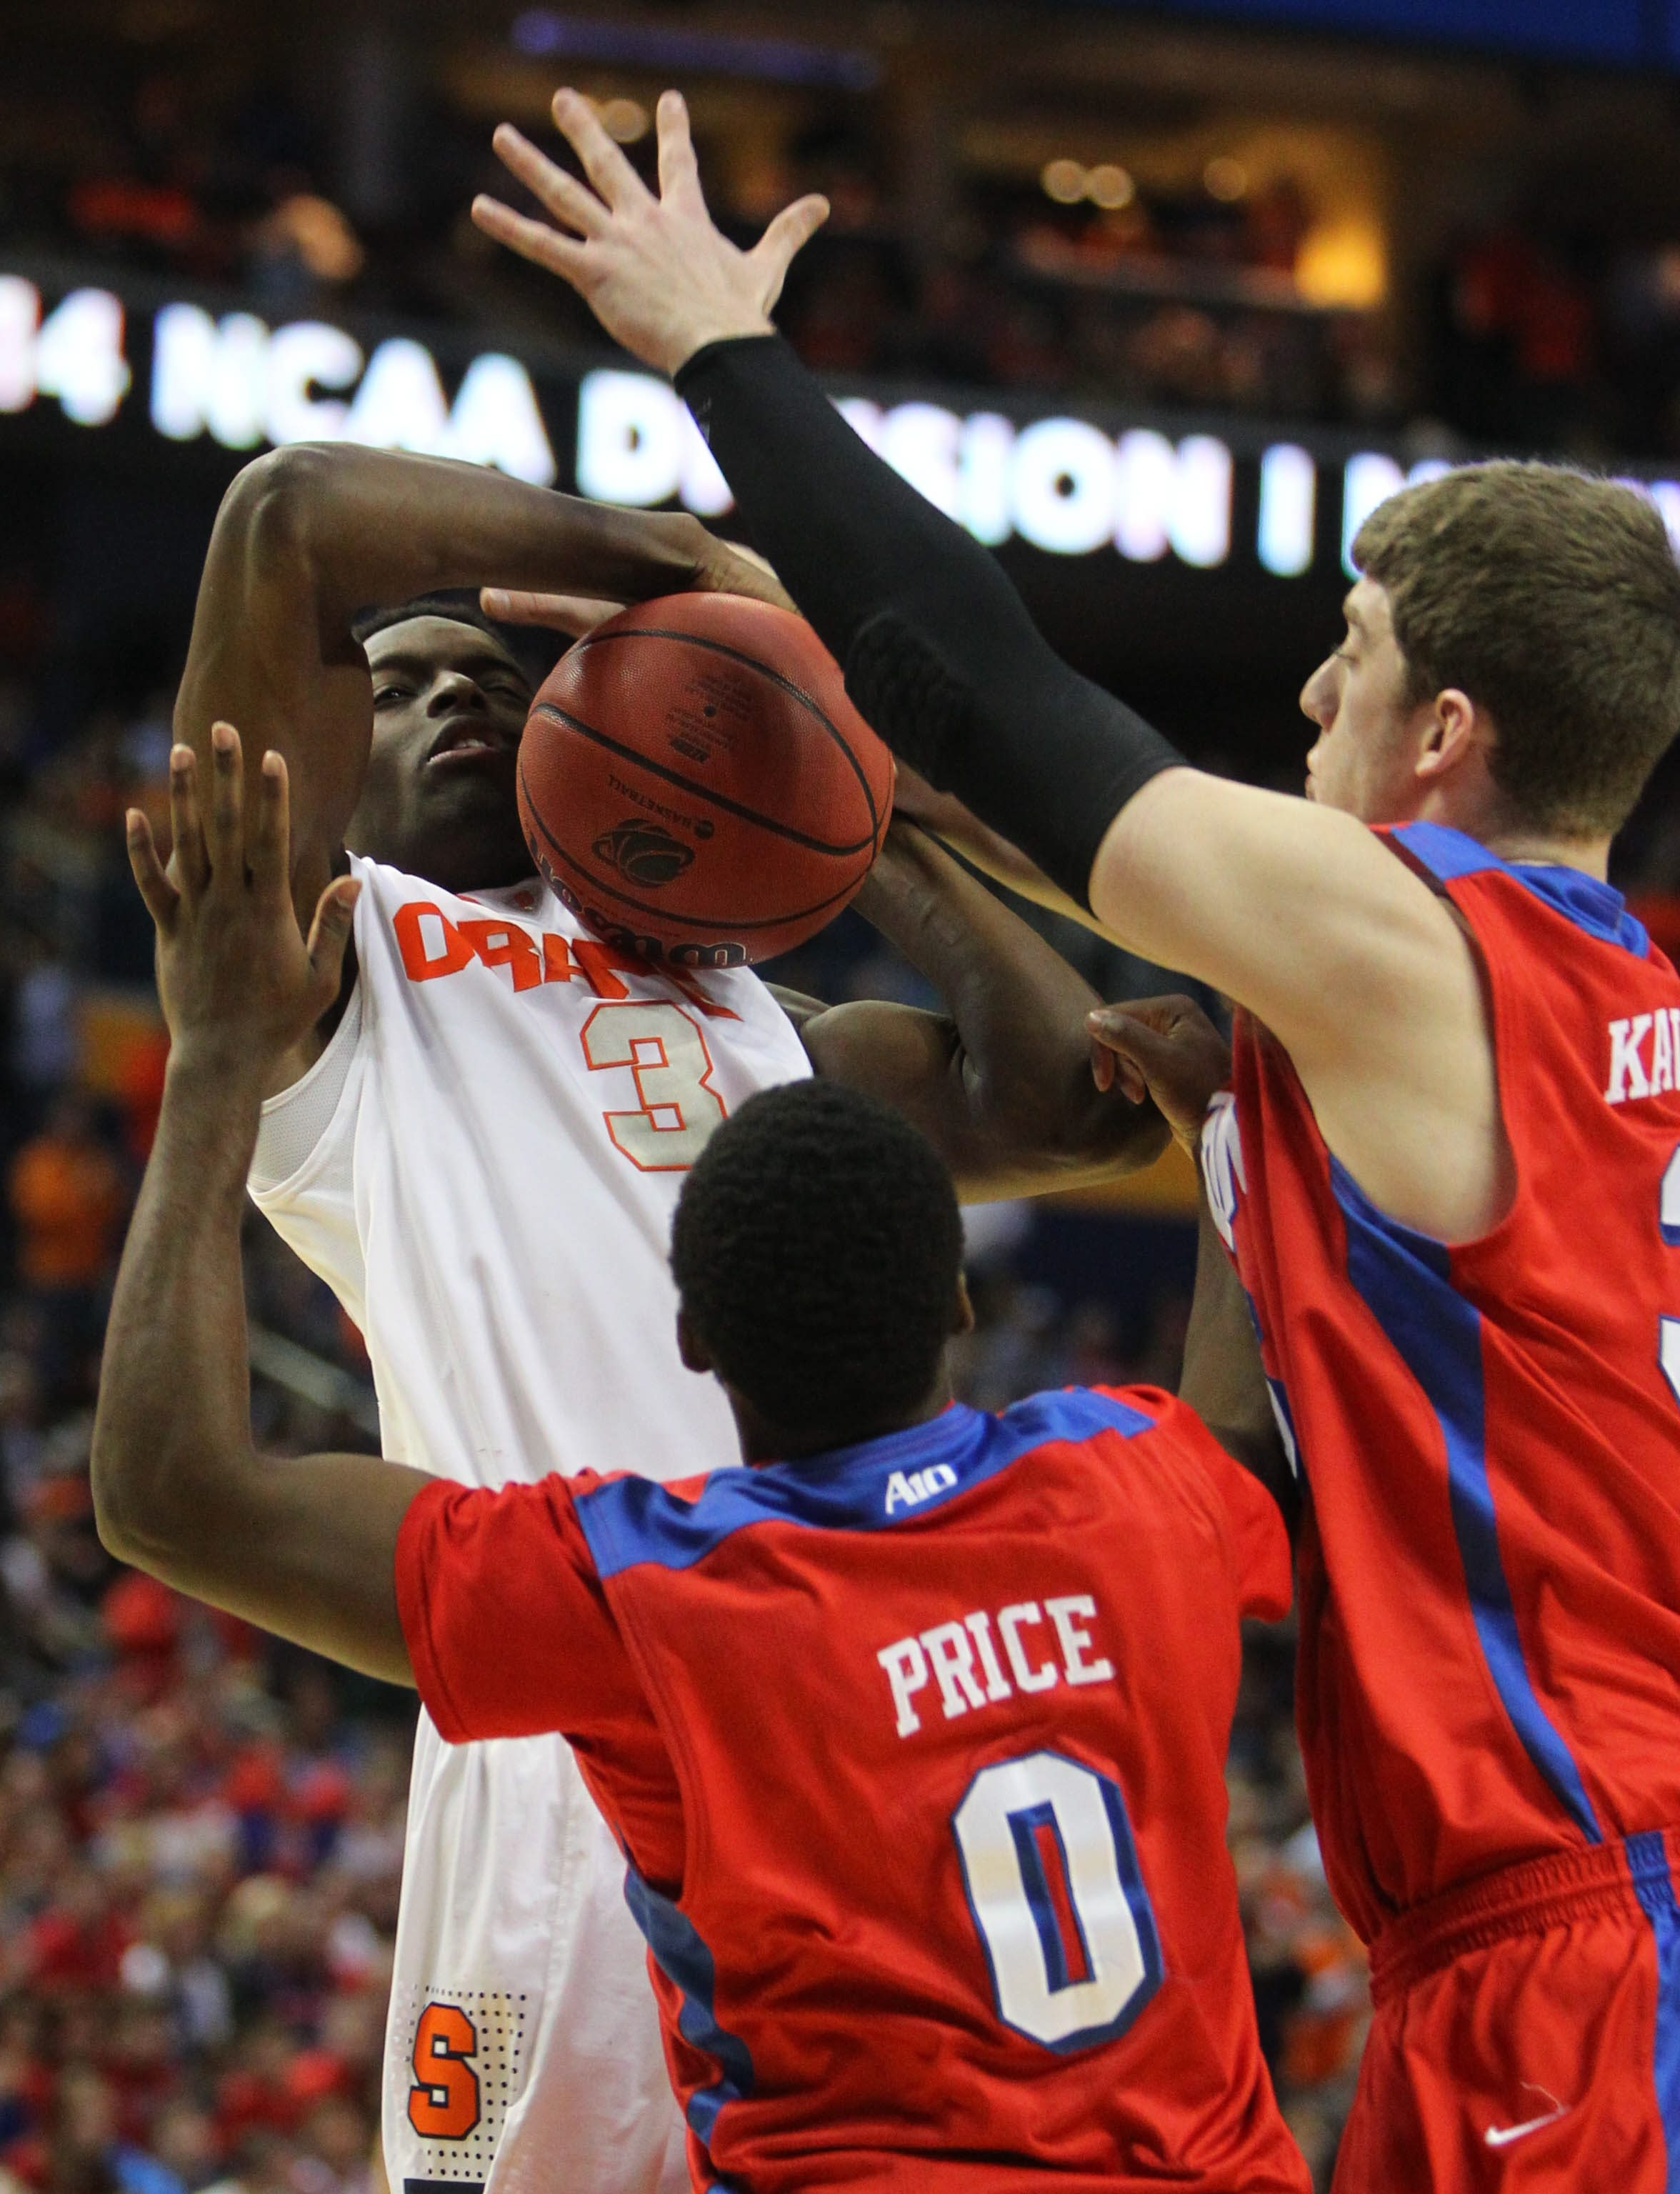 Syracuse's Jerami Grant gets stuffed by Dayton's Khari Price and Matt Kavanaugh in Saturday night's triumph by the 11th-seeded Flyers at First Niagara Center.